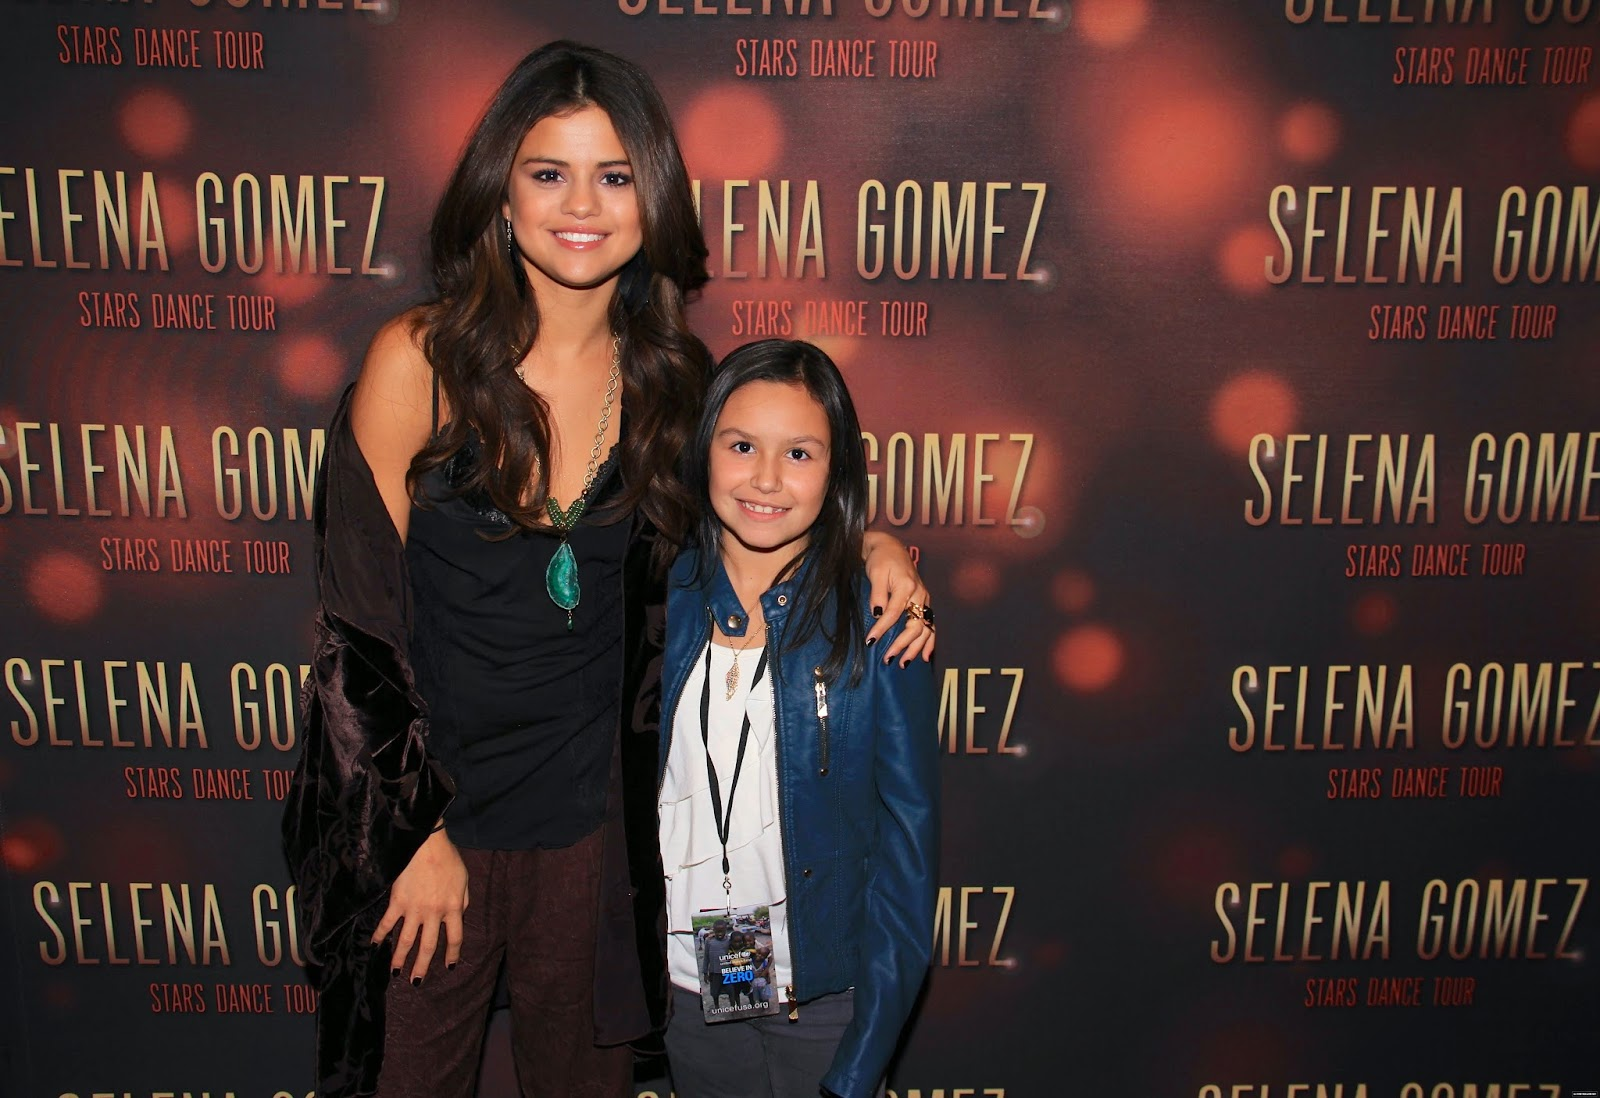 Selena gomez style stars dance world tour meet greet indianapolis stars dance world tour meet greet indianapolis indiana nov 19 2013 m4hsunfo